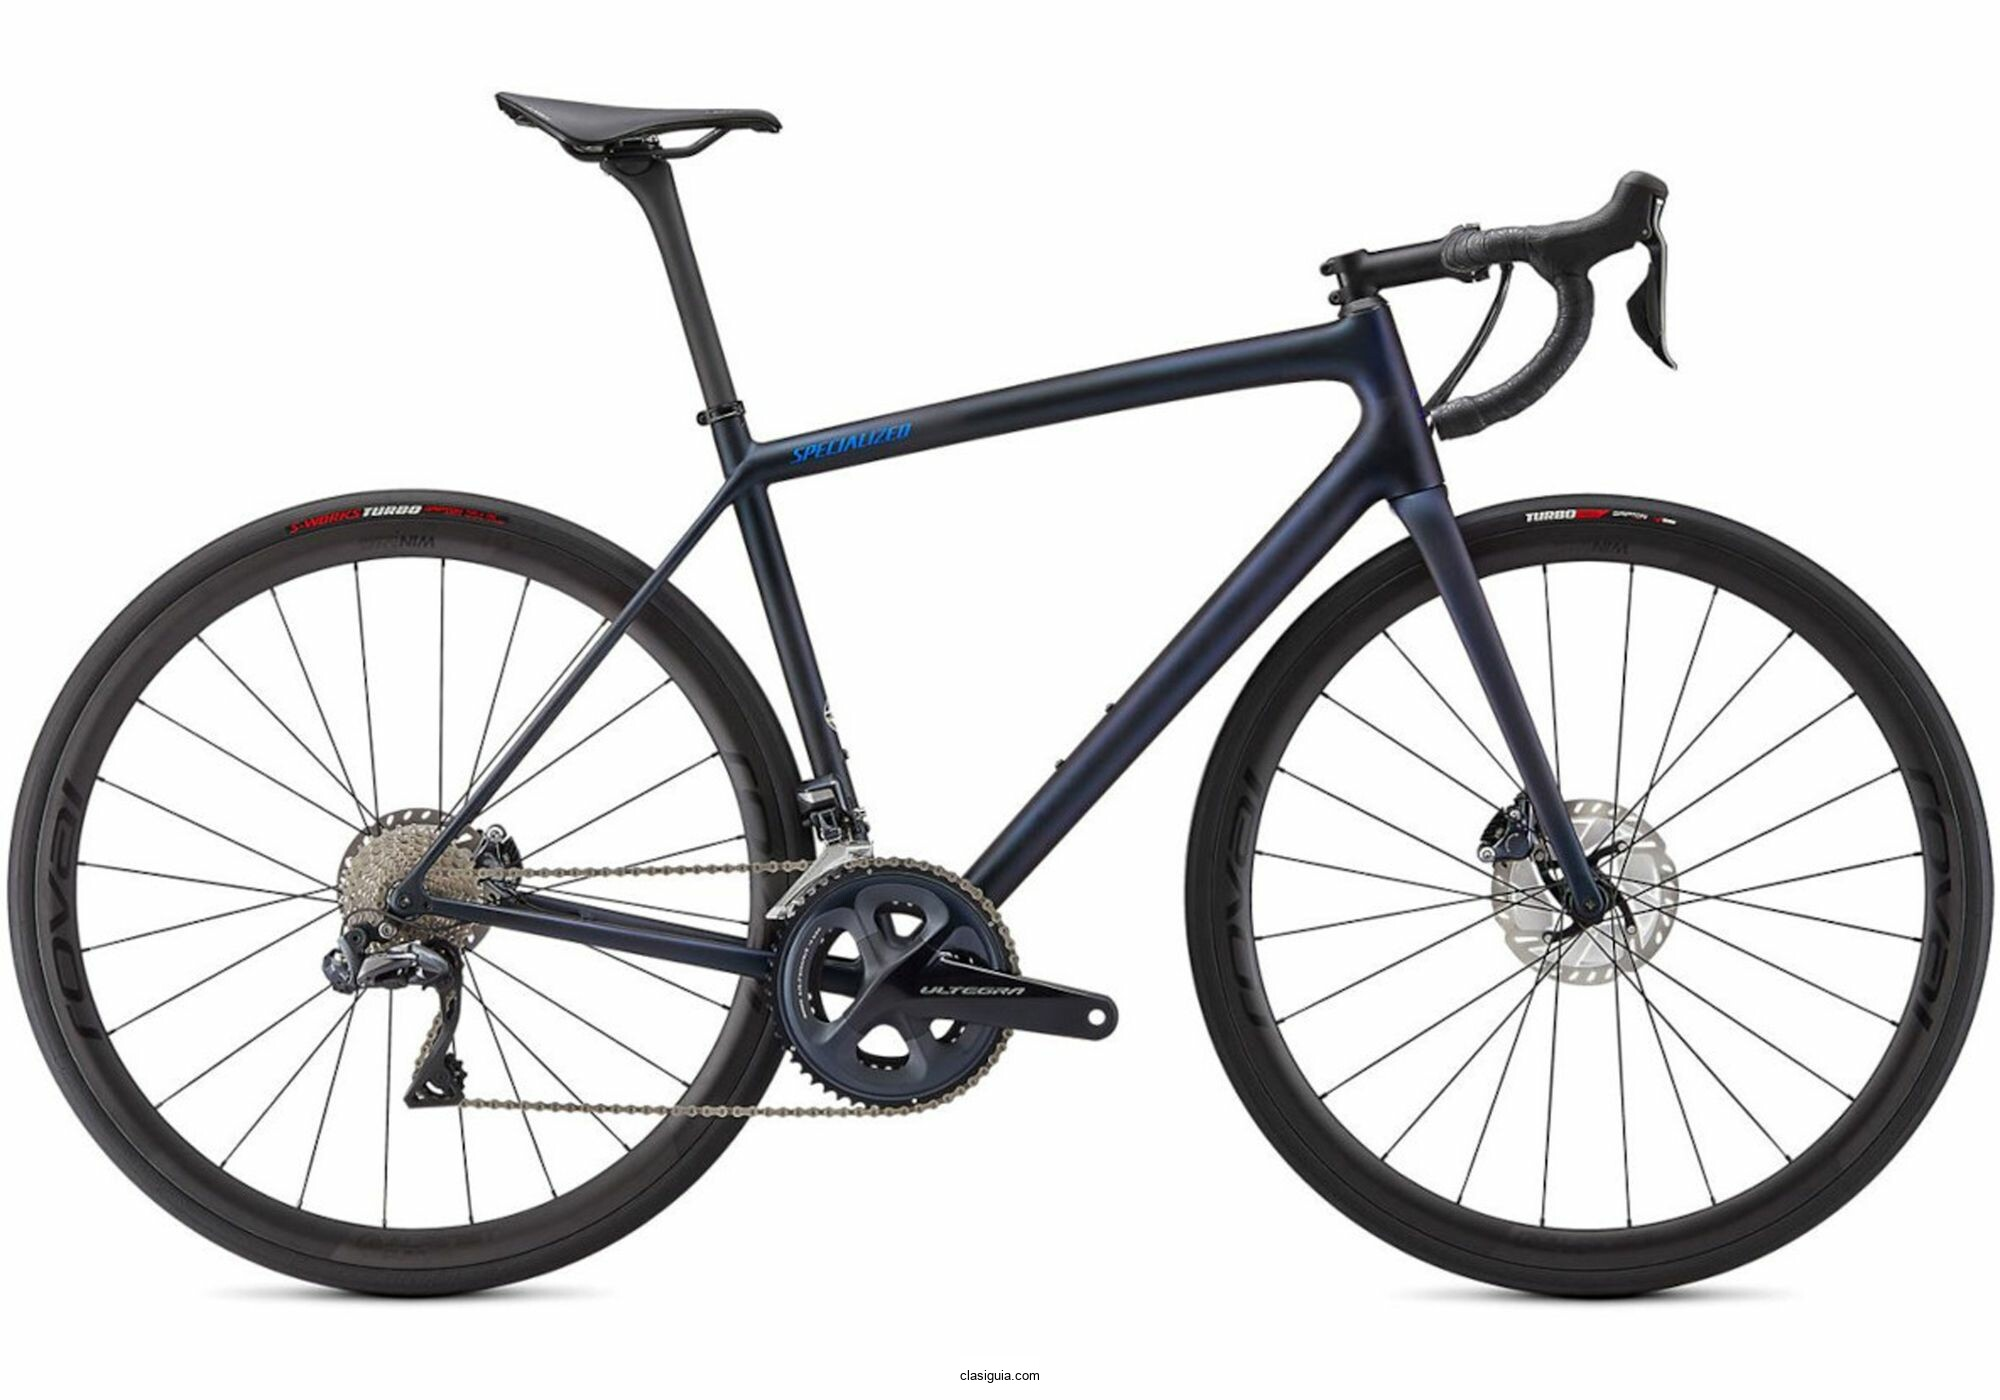 2021 - Specialized Road Bike AETHOS PRO Di2 Carbon (RUNCYCLES)